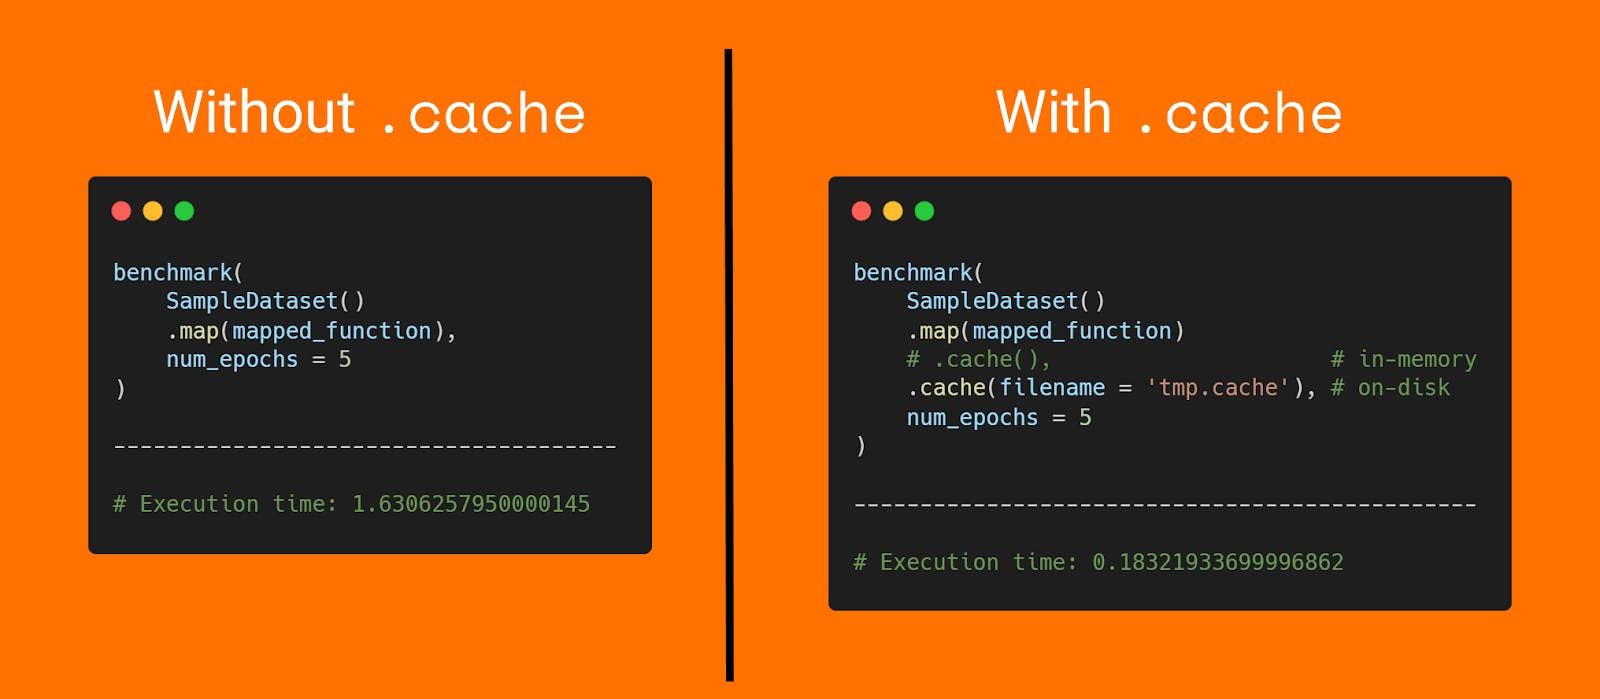 A simple example of caching datasets and the speedup with it